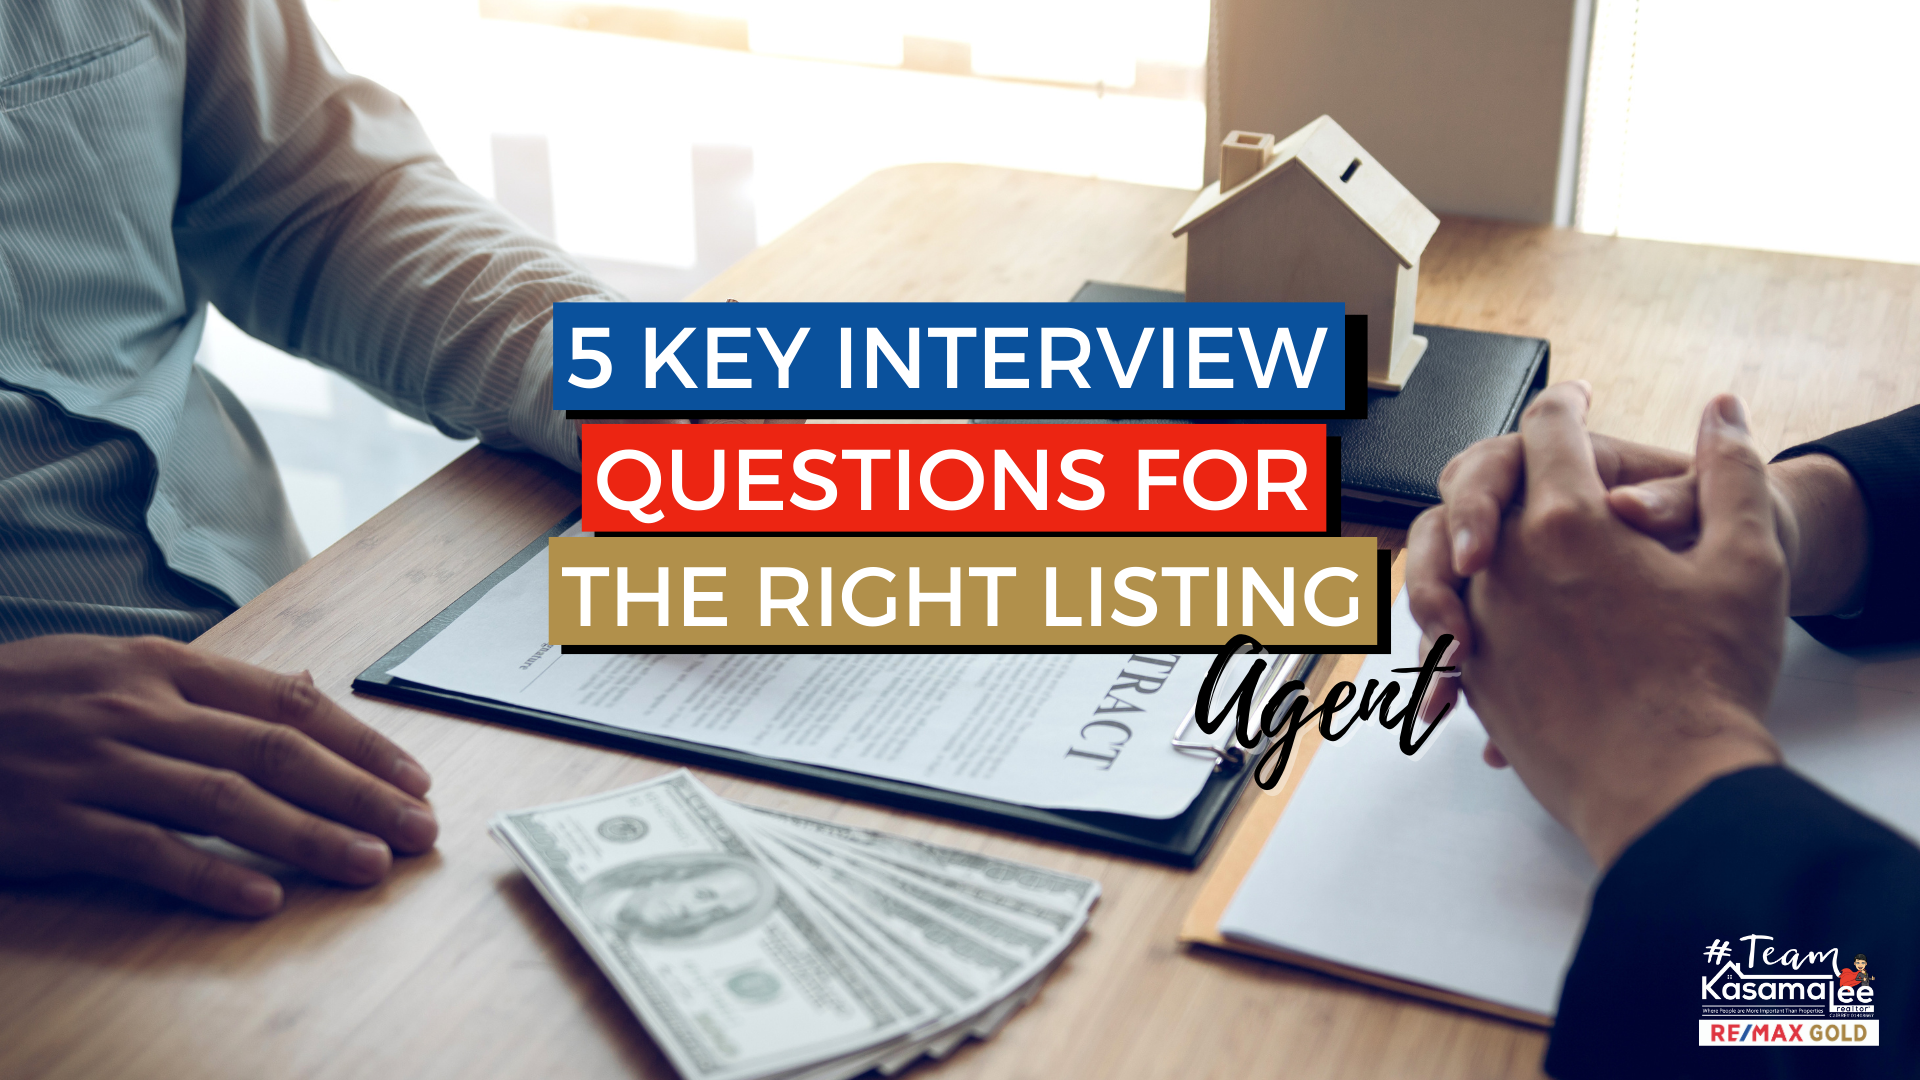 Questions for the Right Listing Agent